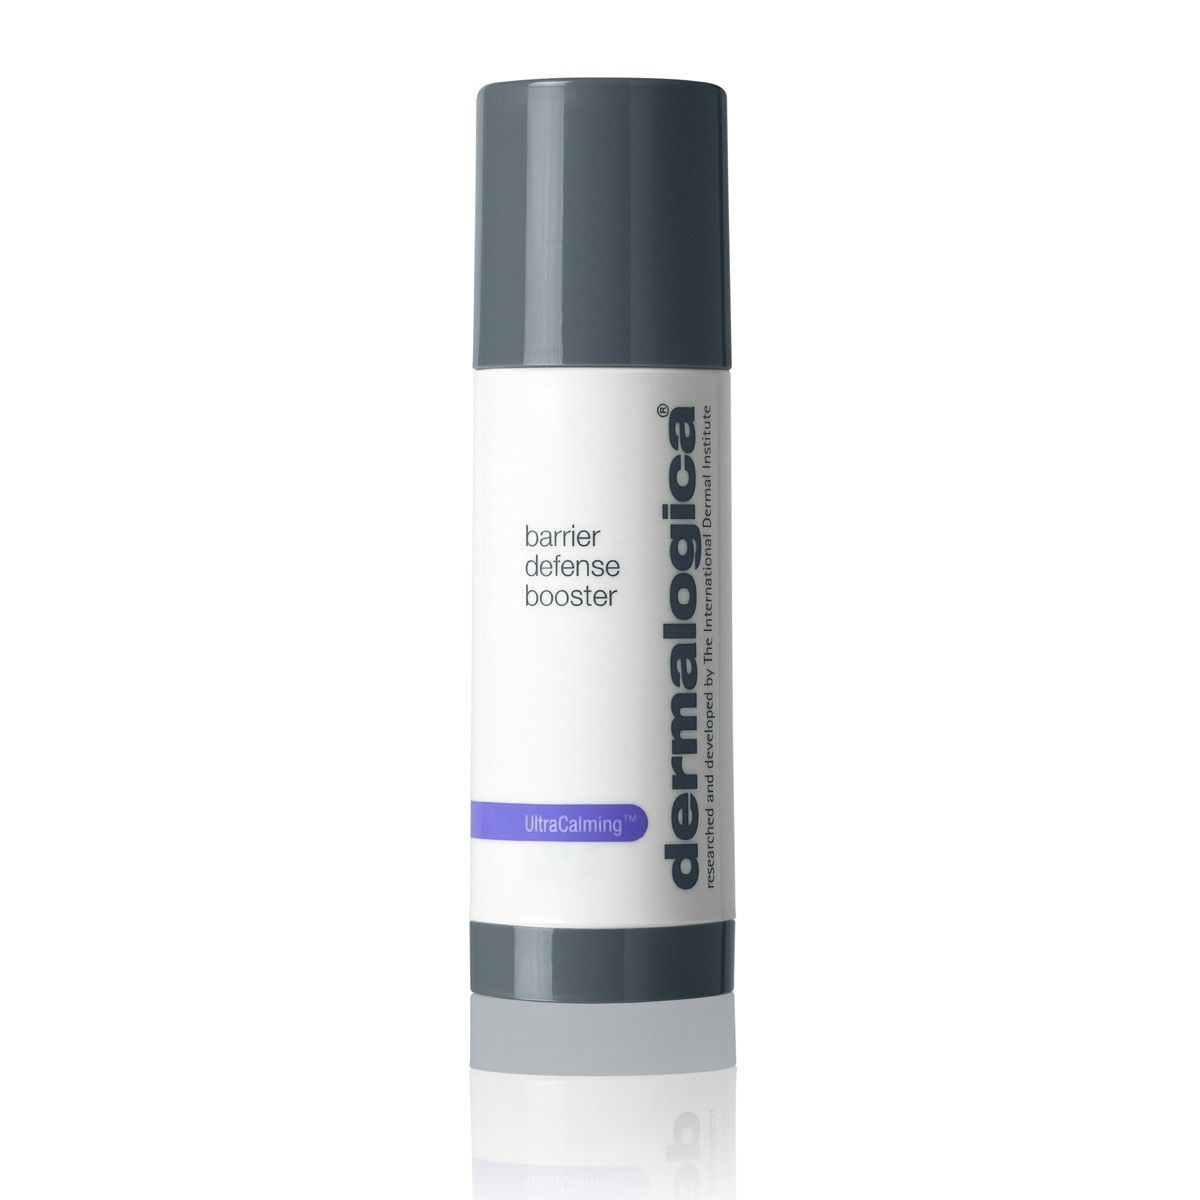 Afbeelding van Dermalogica Barrier Defense Booster Serum Concentraat Beauty